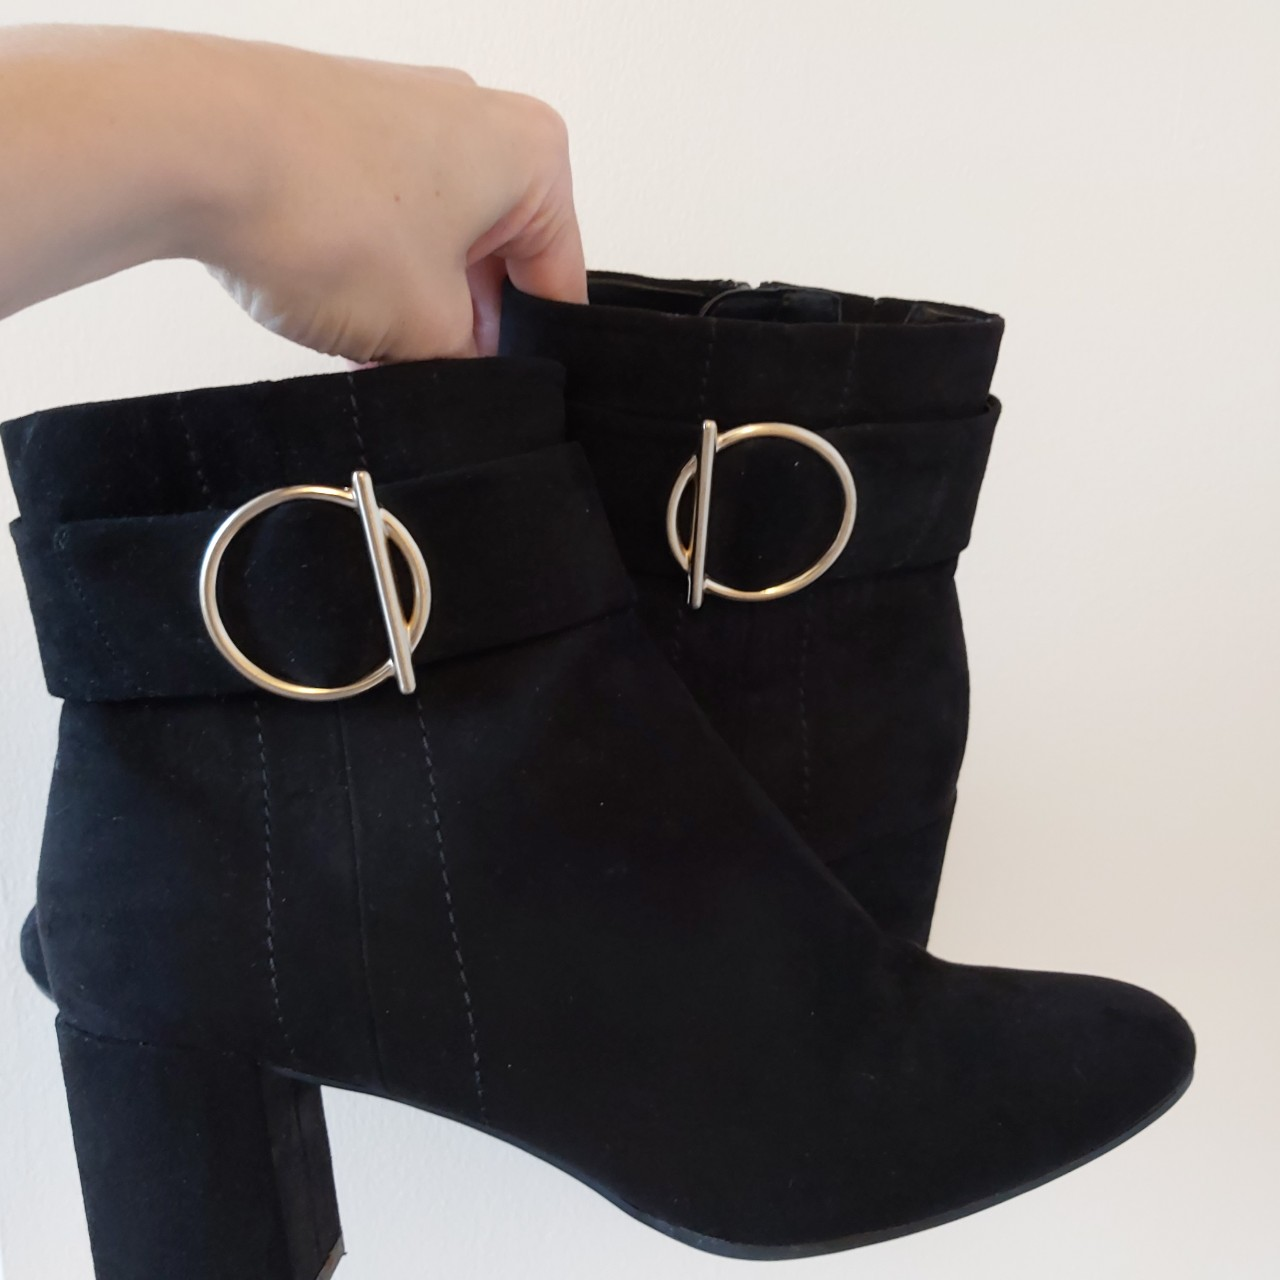 M and S black Suede heeled boots